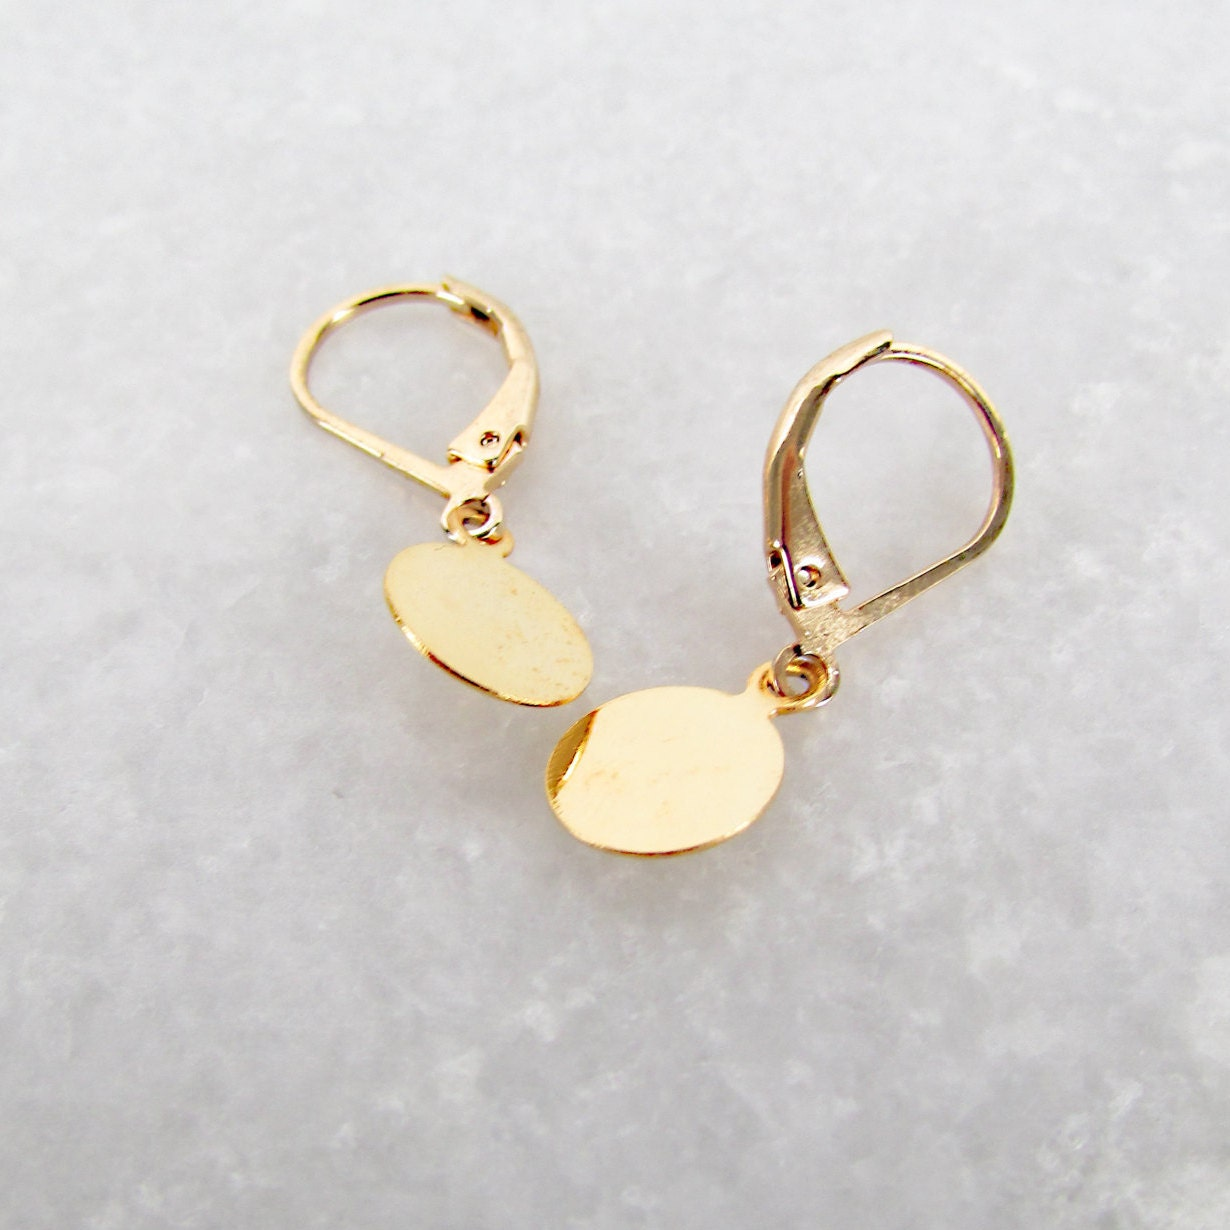 wedding gifts item dropshiping ear delicate stud earrings simple for from girl mini cute jewelry in bar new t women gold fashion